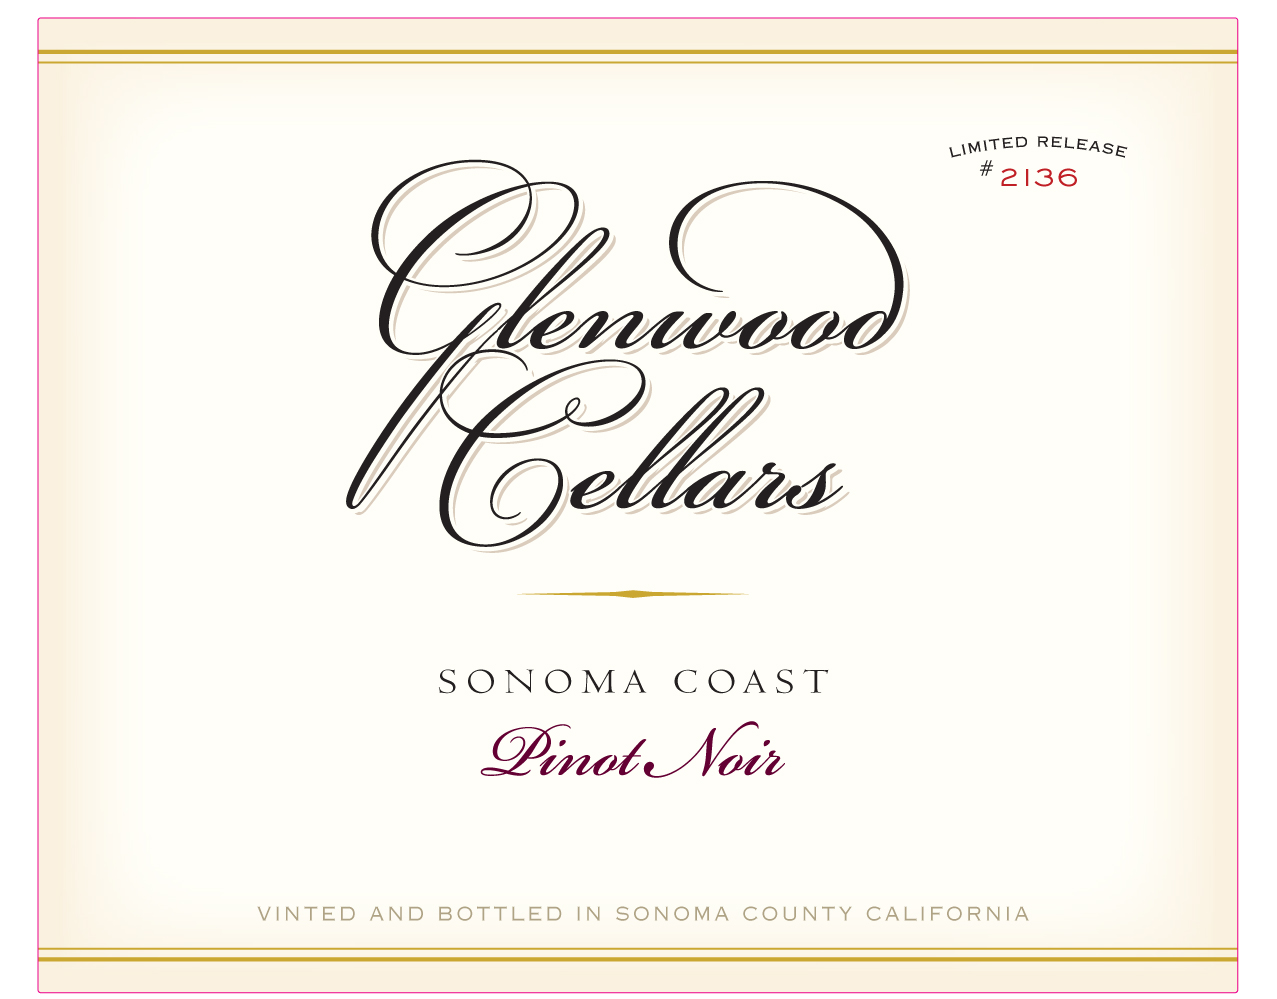 2015 Pinot Noir - 2015 was a year of exceptionally low Pinot Noir yields all across Sonoma, with small clusters and tiny berries providing impressive color, concentration, structure and tannin to the finished wines. Delicate and tightly wound aromas of dark berry, cola nut, mint, rose petal and fresh earth are refined and captivating. One sip reveals the serious intensity of the vintage, with gorgeous palate presence and tremendous length revealing dark cherry, black raspberry, cola and cloves, and a hint of black licorice completing the ensemble. Immensely satisfying now, this Pinot should also age nicely in your cellar for another 3 to 5 years!